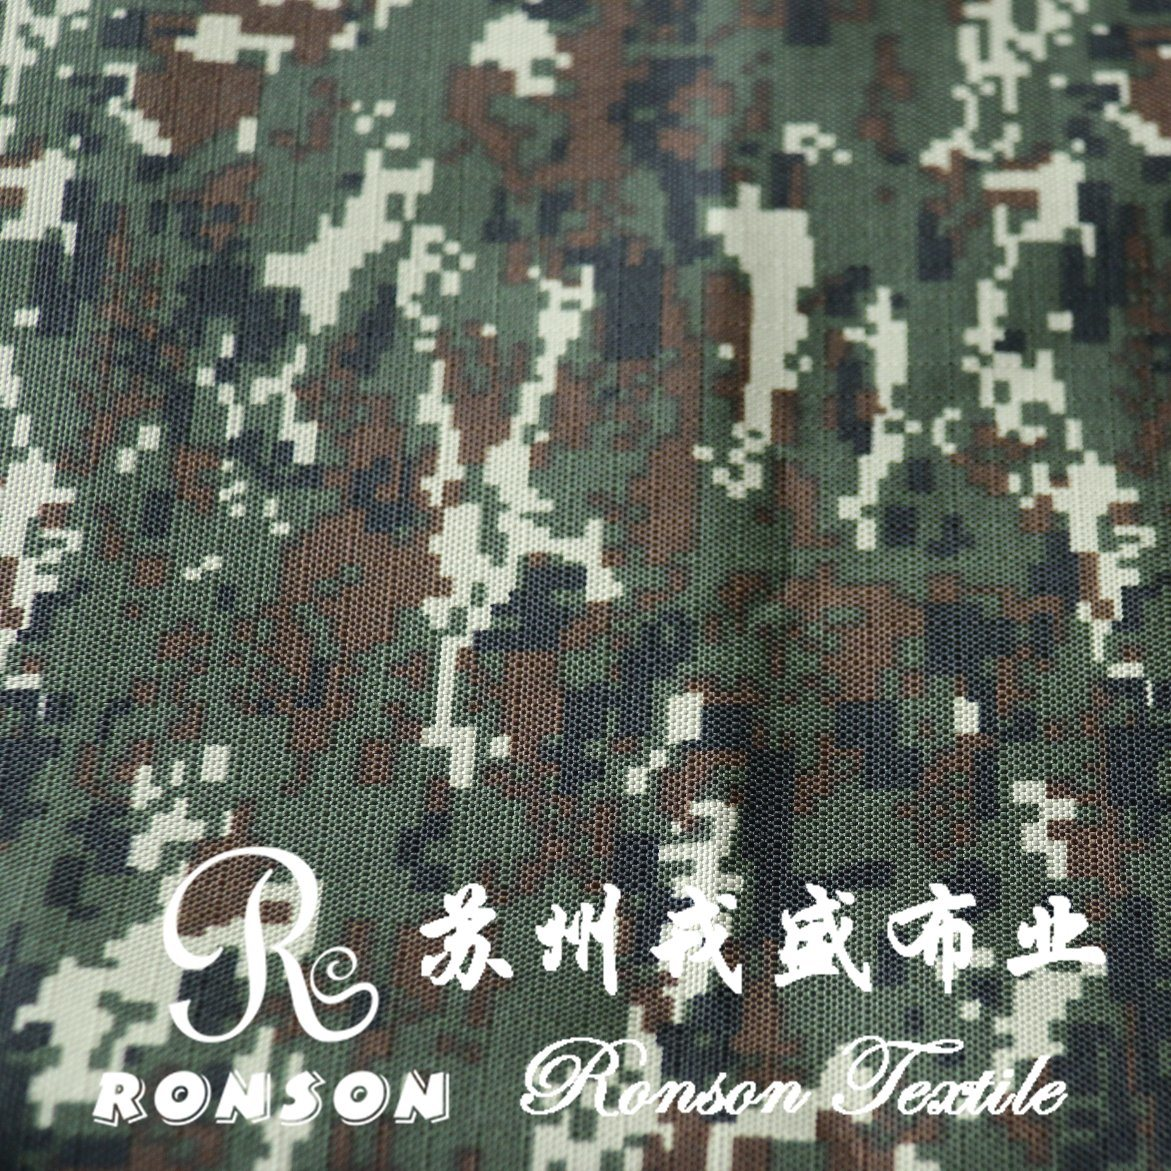 600d Ripstop Polyester Oxford Fabric, 0.5 Check Digital Camouflage